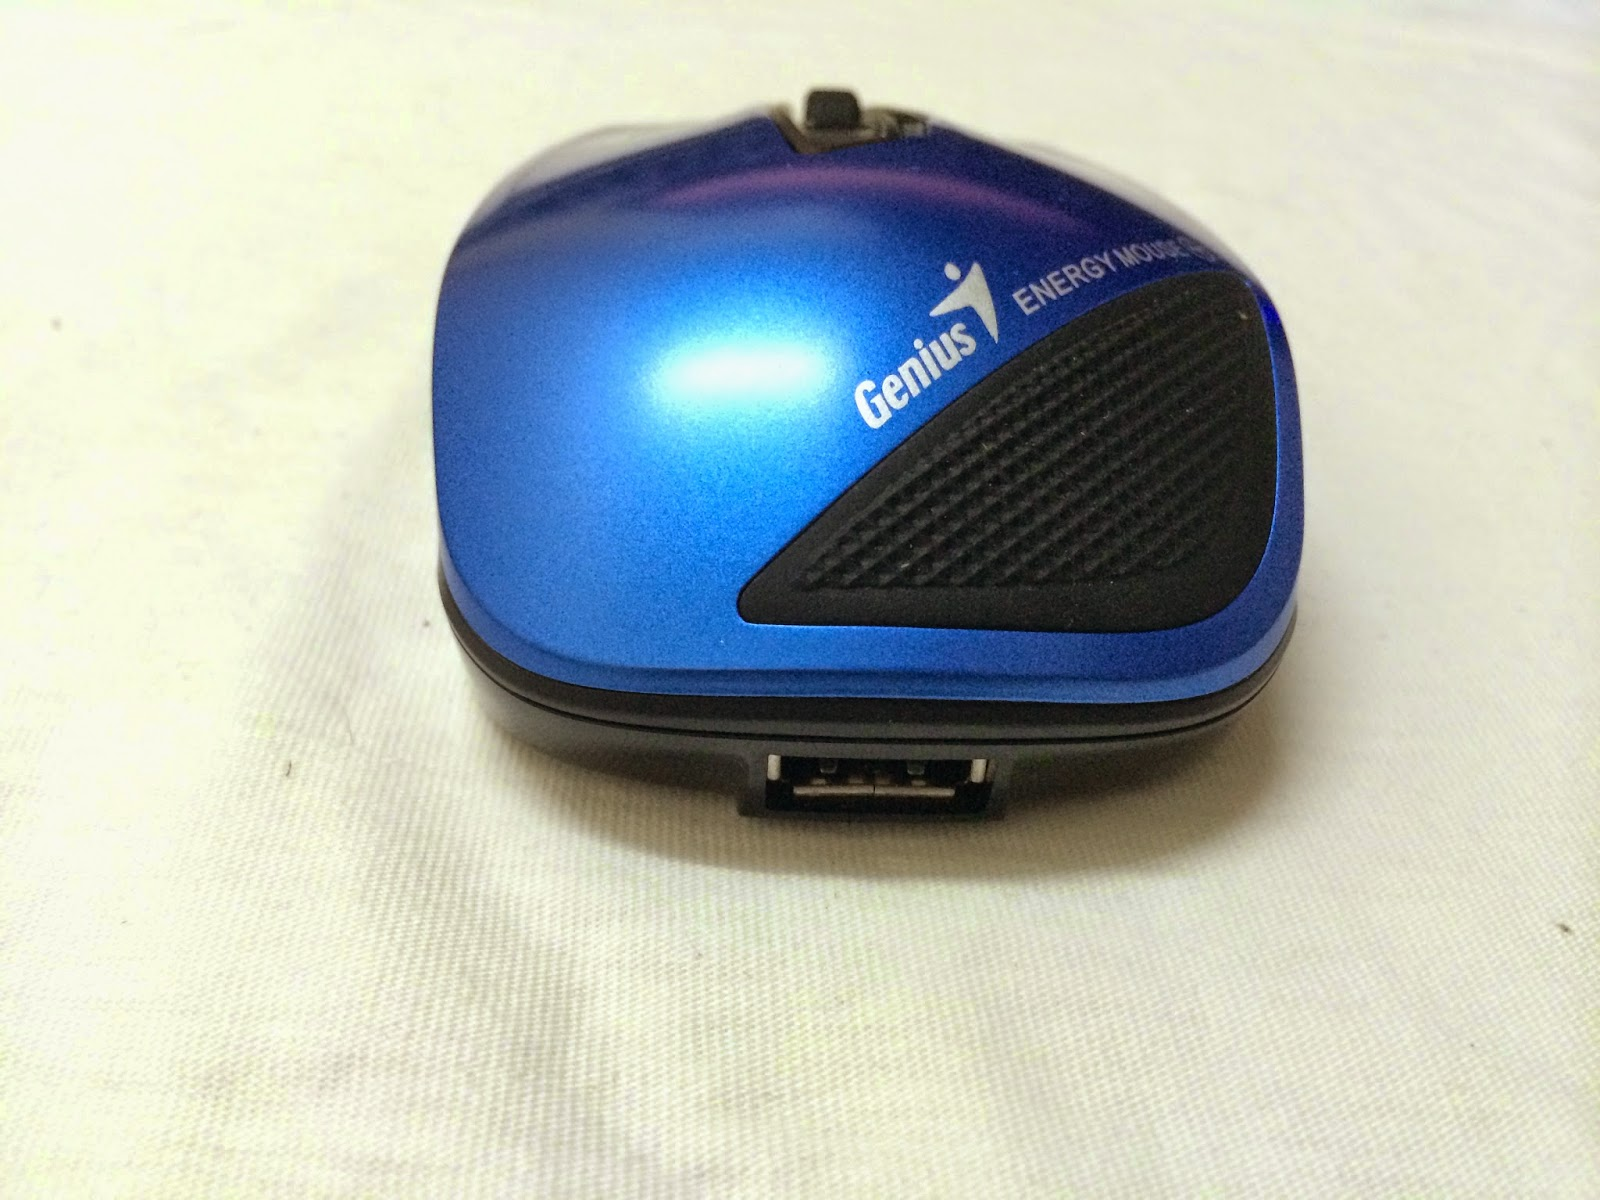 Unboxing & Review: Genius Energy Mouse 7